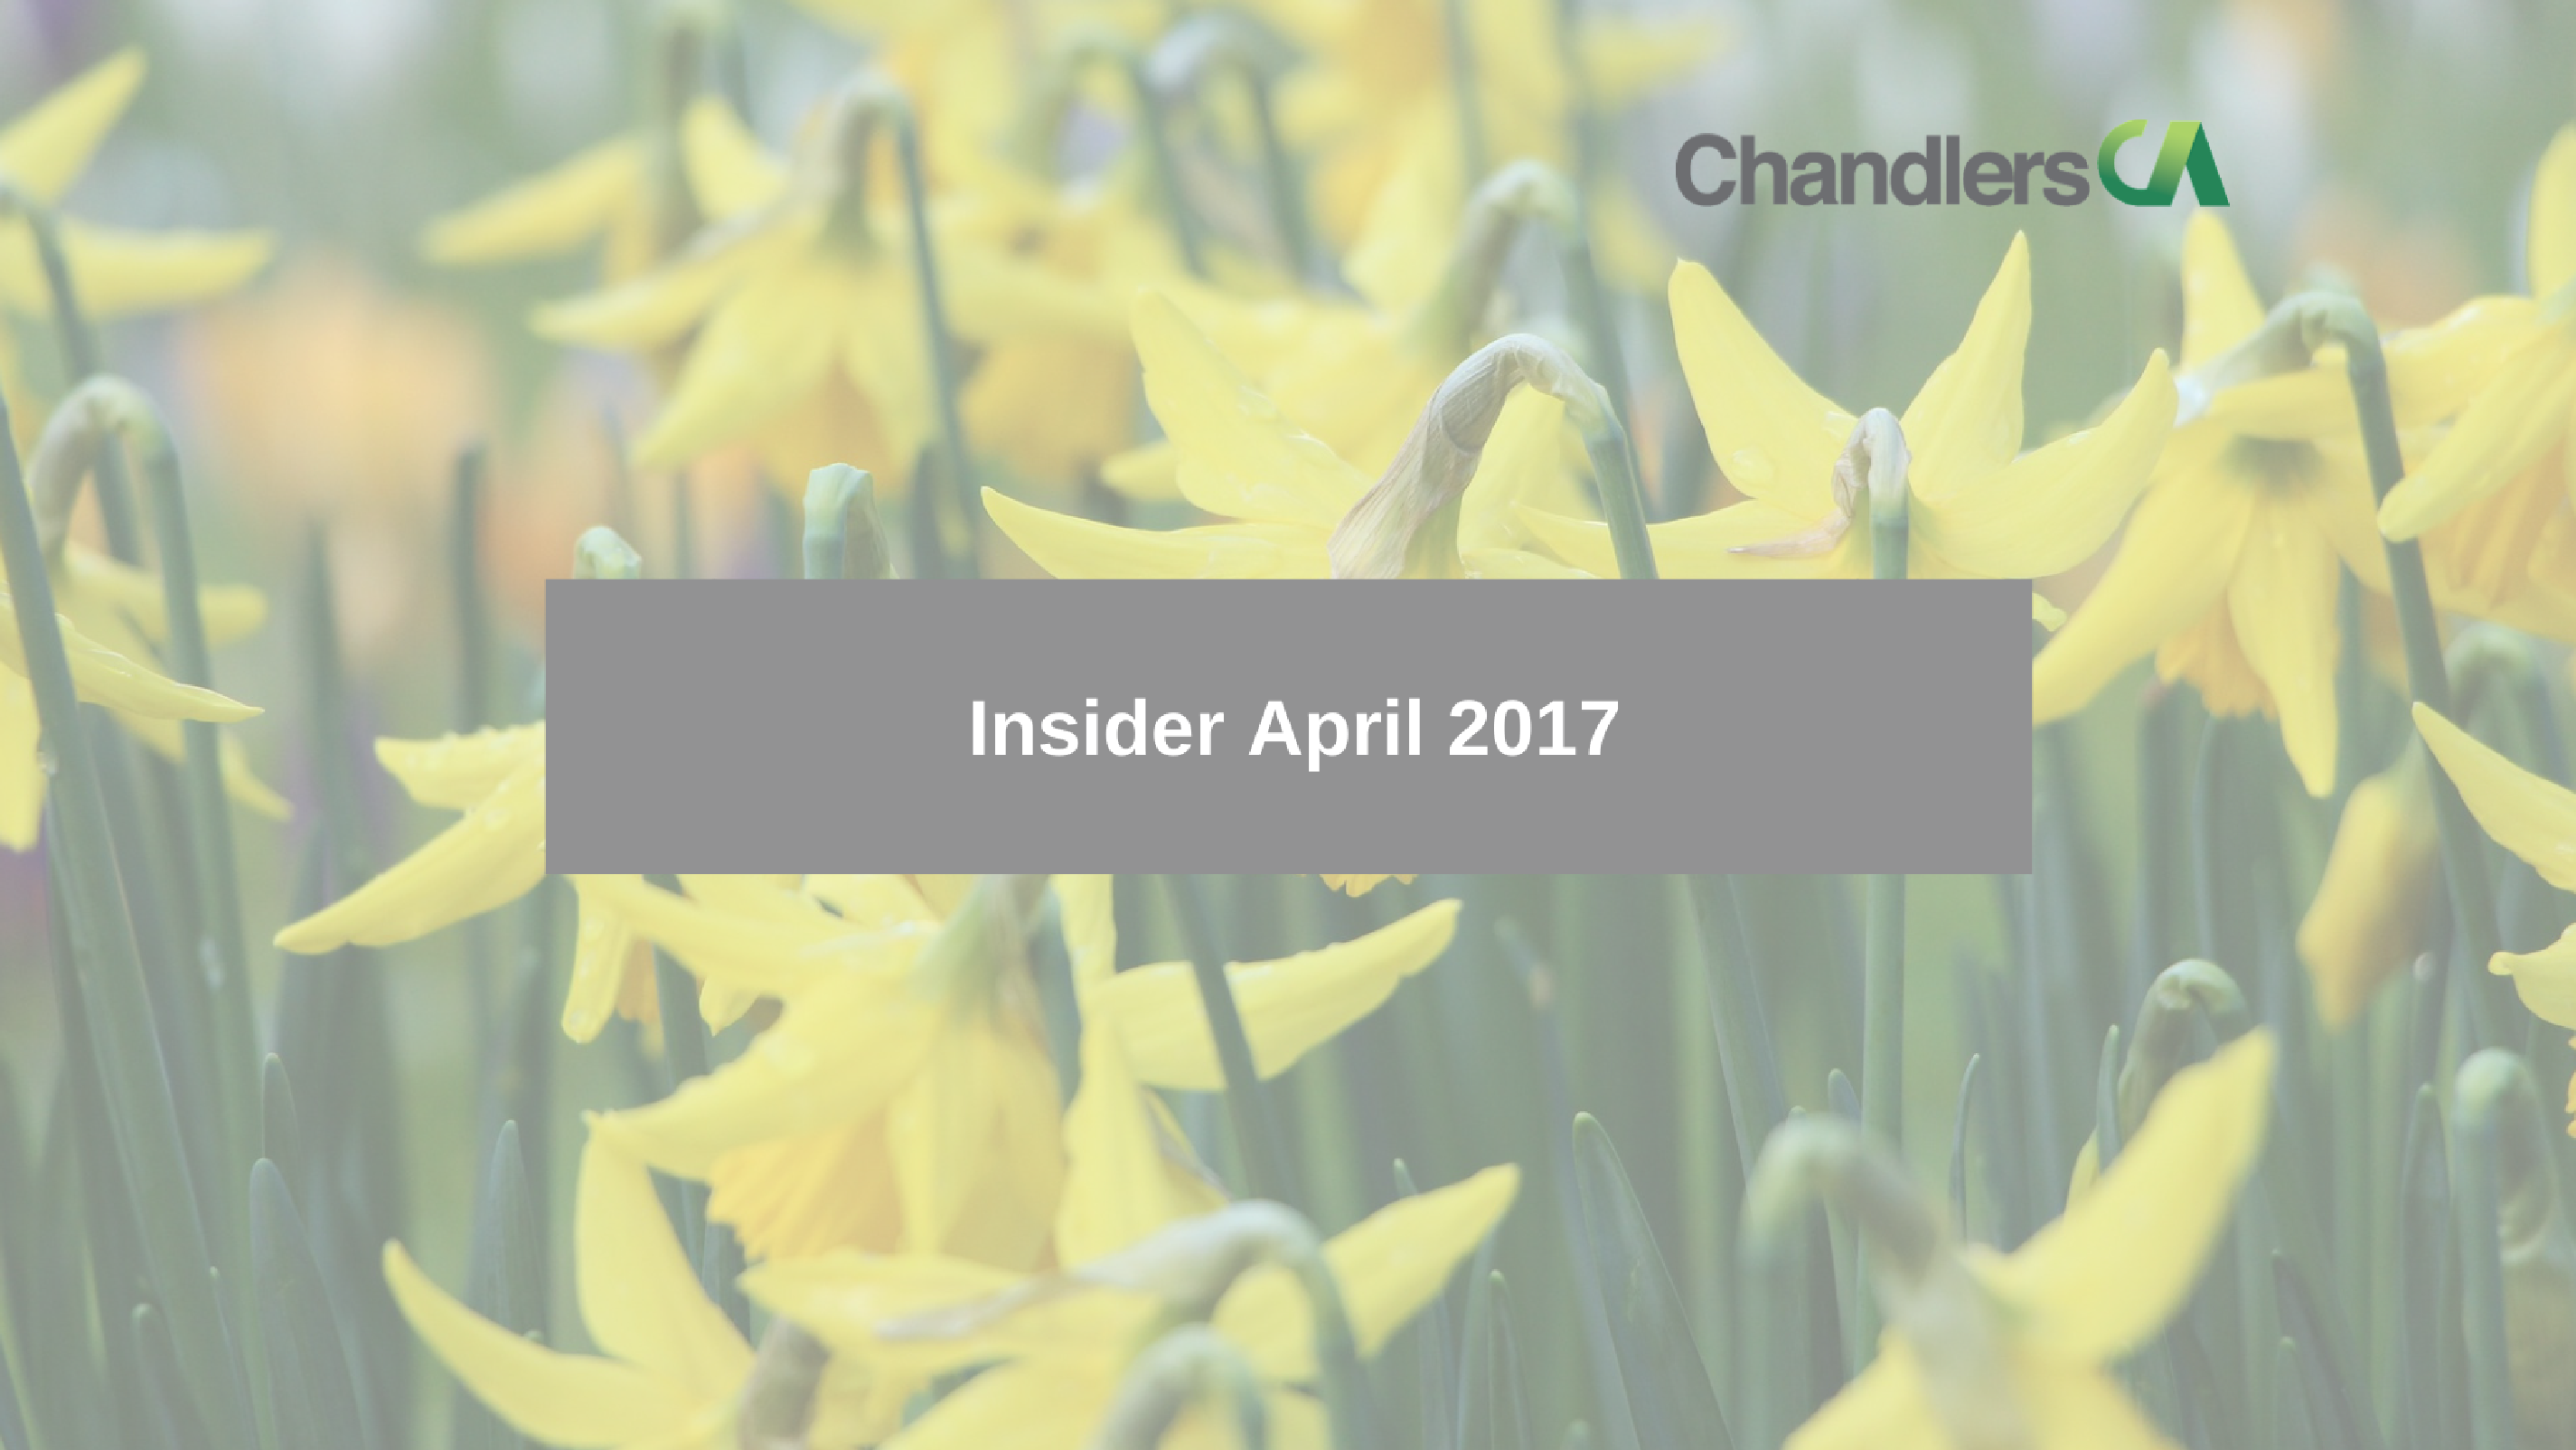 Insider tax guide for April 2017